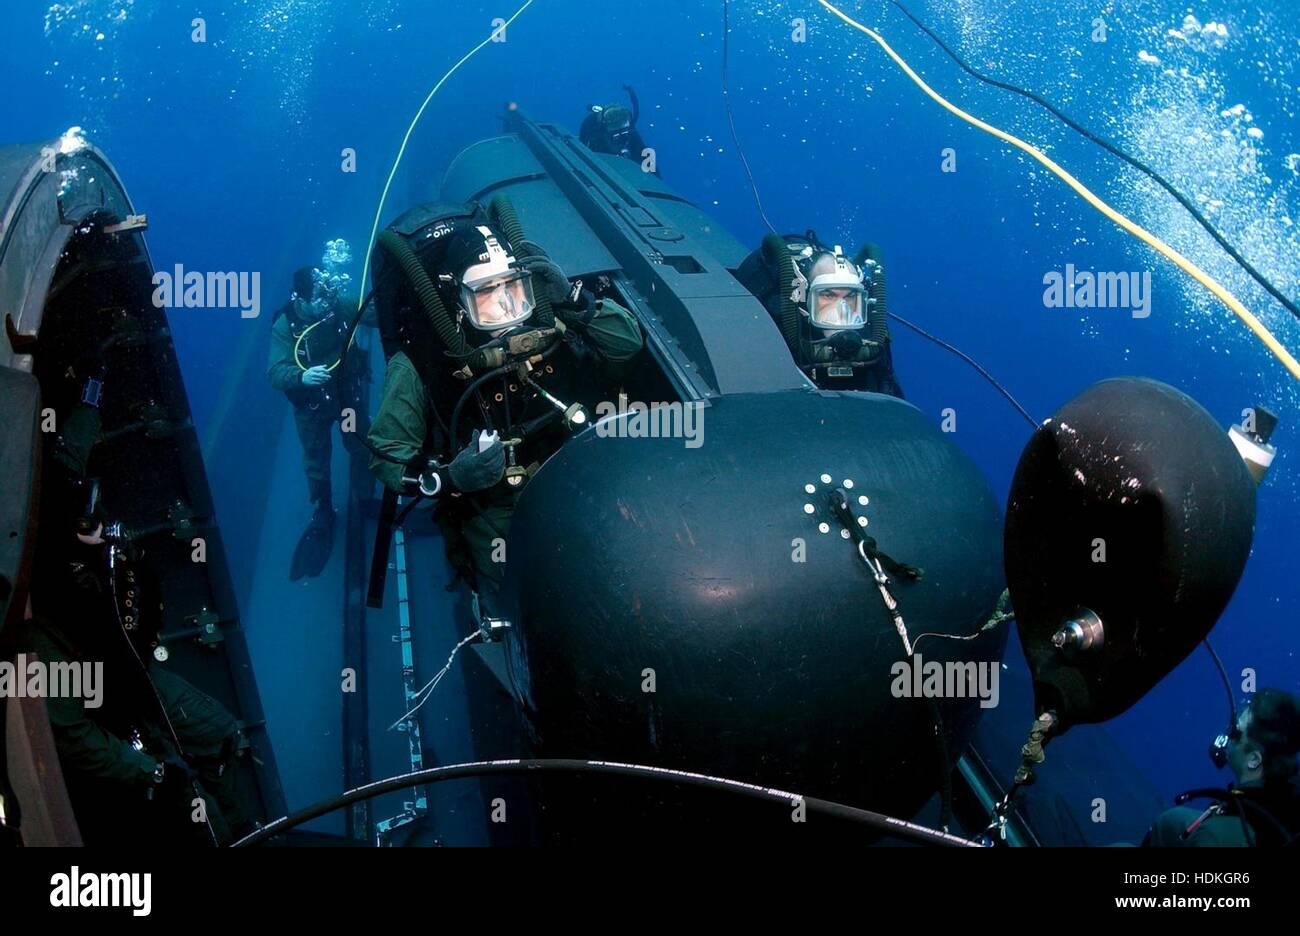 U.S. Navy SEAL divers prepare to launch a SEAL Delivery Vehicle from the back of the submerged USN Los Angeles-class - Stock Image